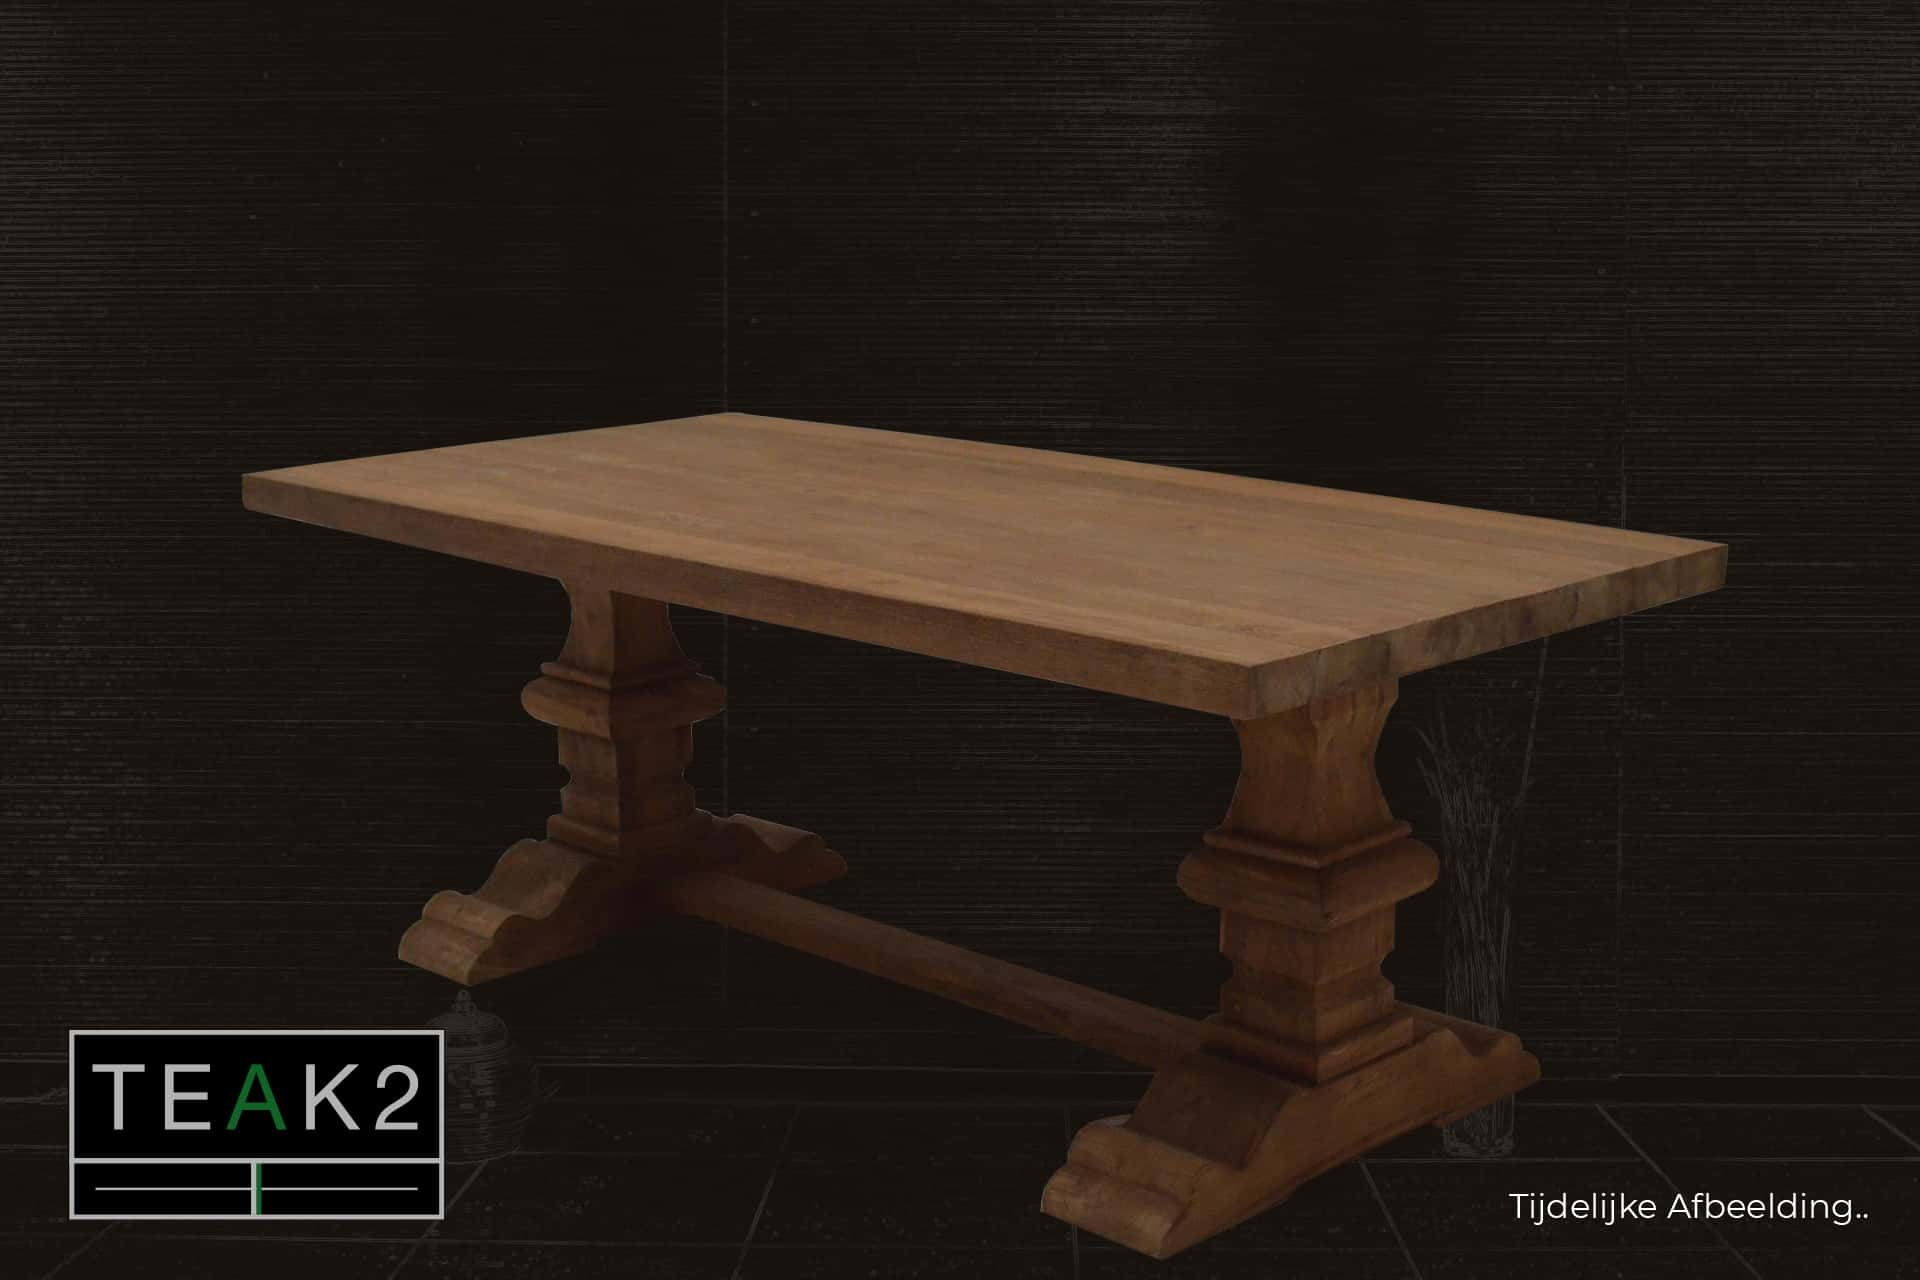 Teak Rahib T200 | smooth teak monastery table with thick solid leg and smooth untreated teak. Luxury rural style table without header - TEAK2.